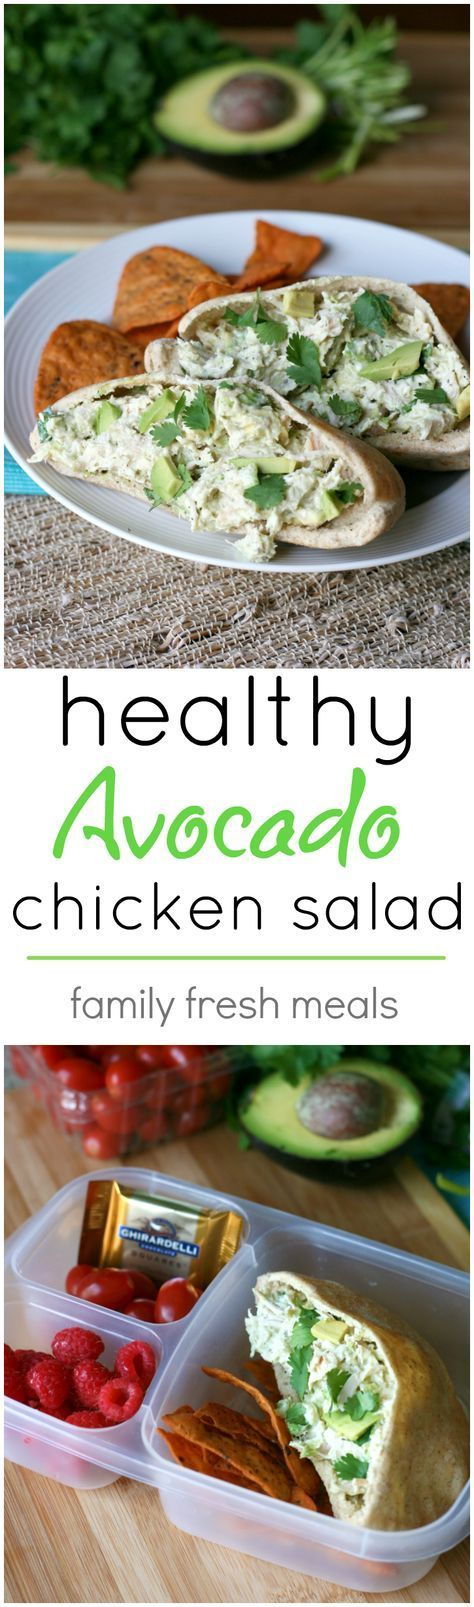 Healthy Avocado Chicken Salad Recipe - If you love chicken salad and avocados…